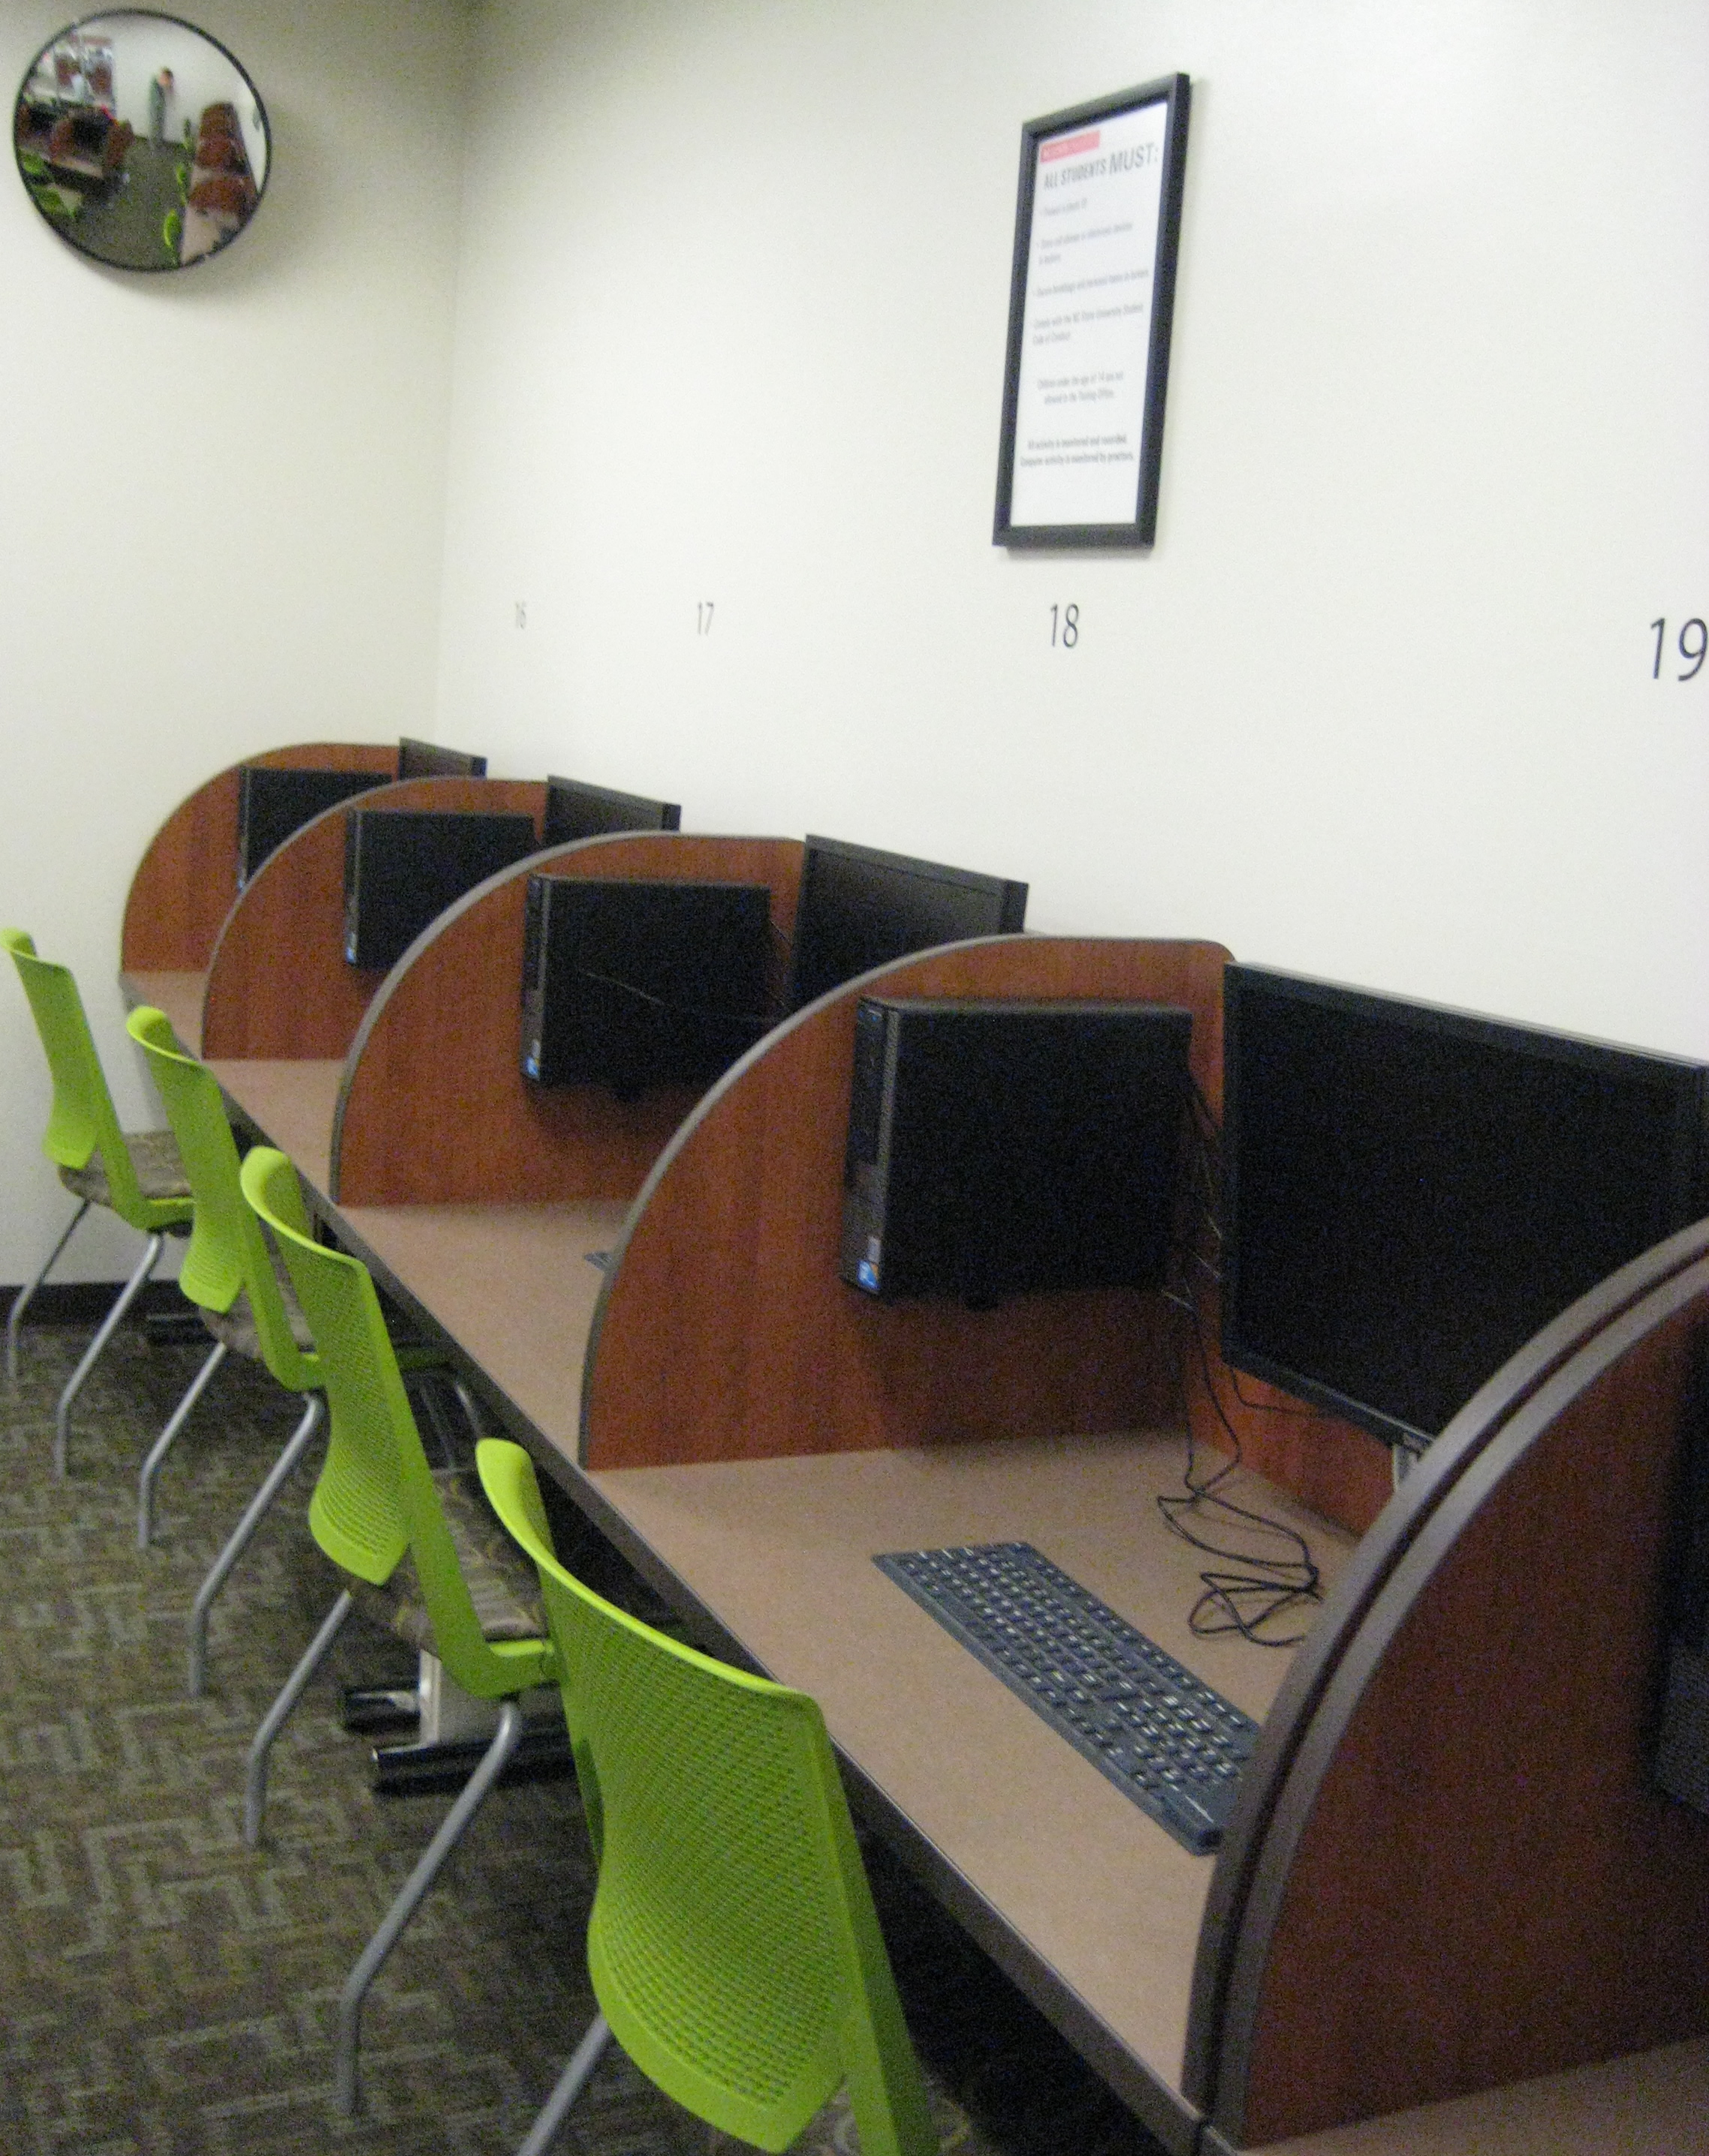 Computers are mounted to the station walls to maximize available desk space.